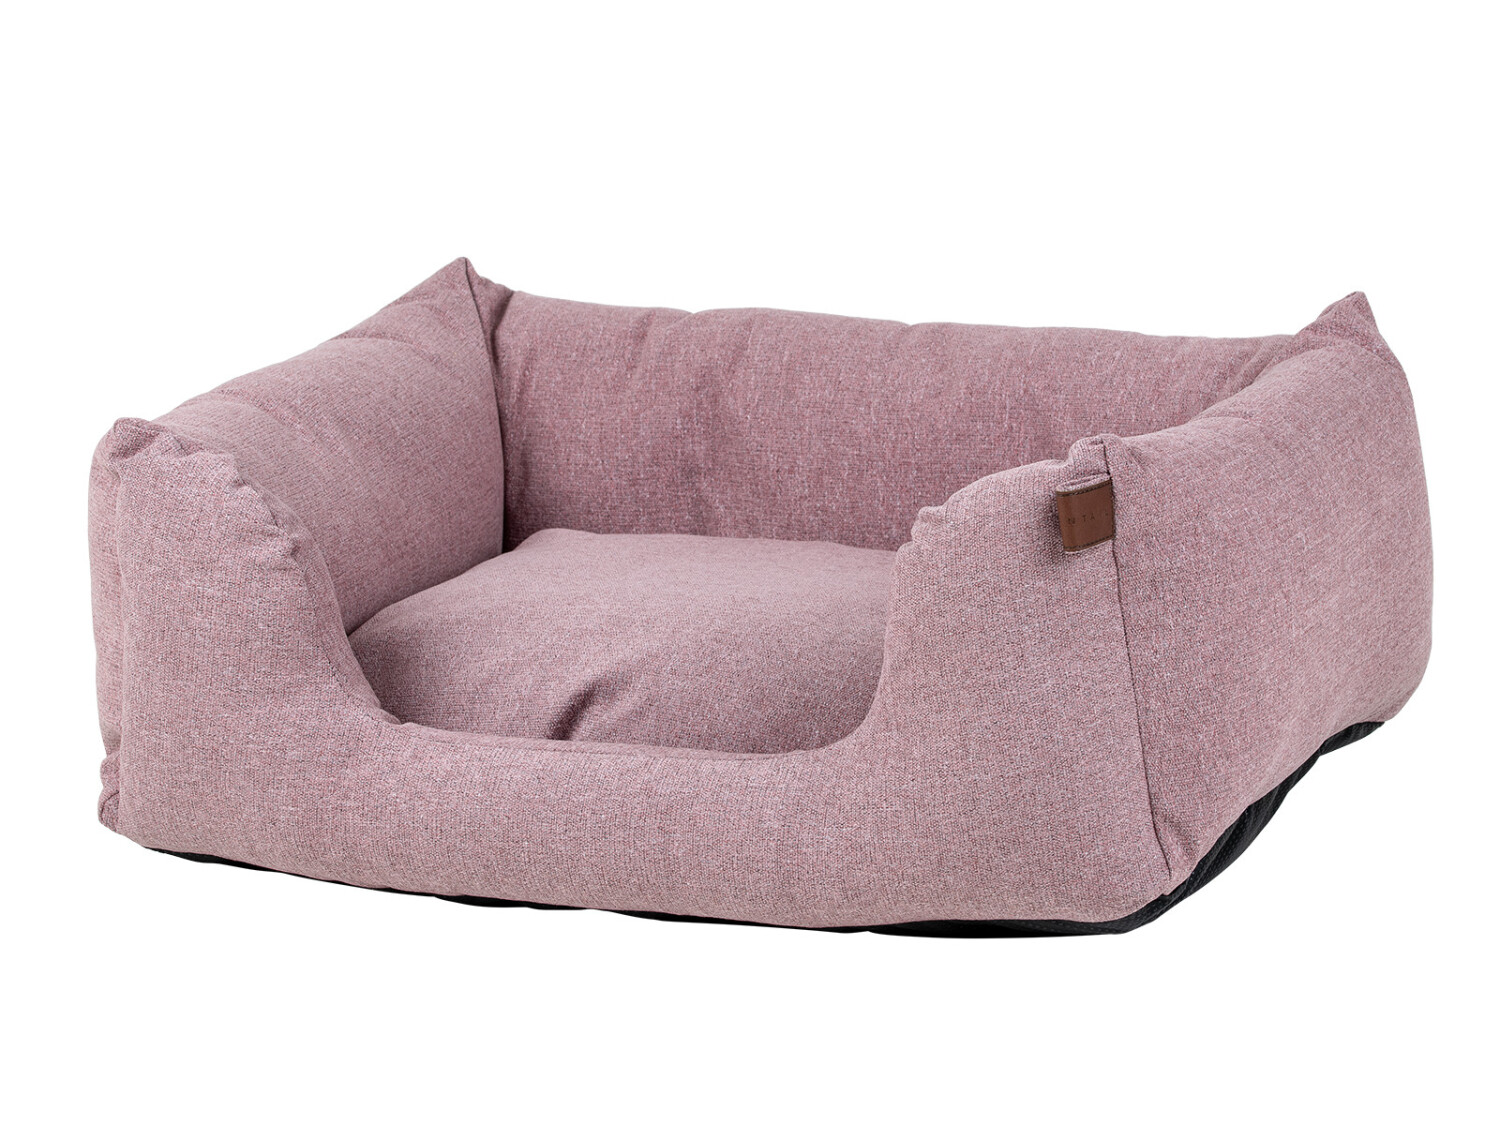 Hondenmand Fantail Snooze 80 x 60 cm Iconic pink